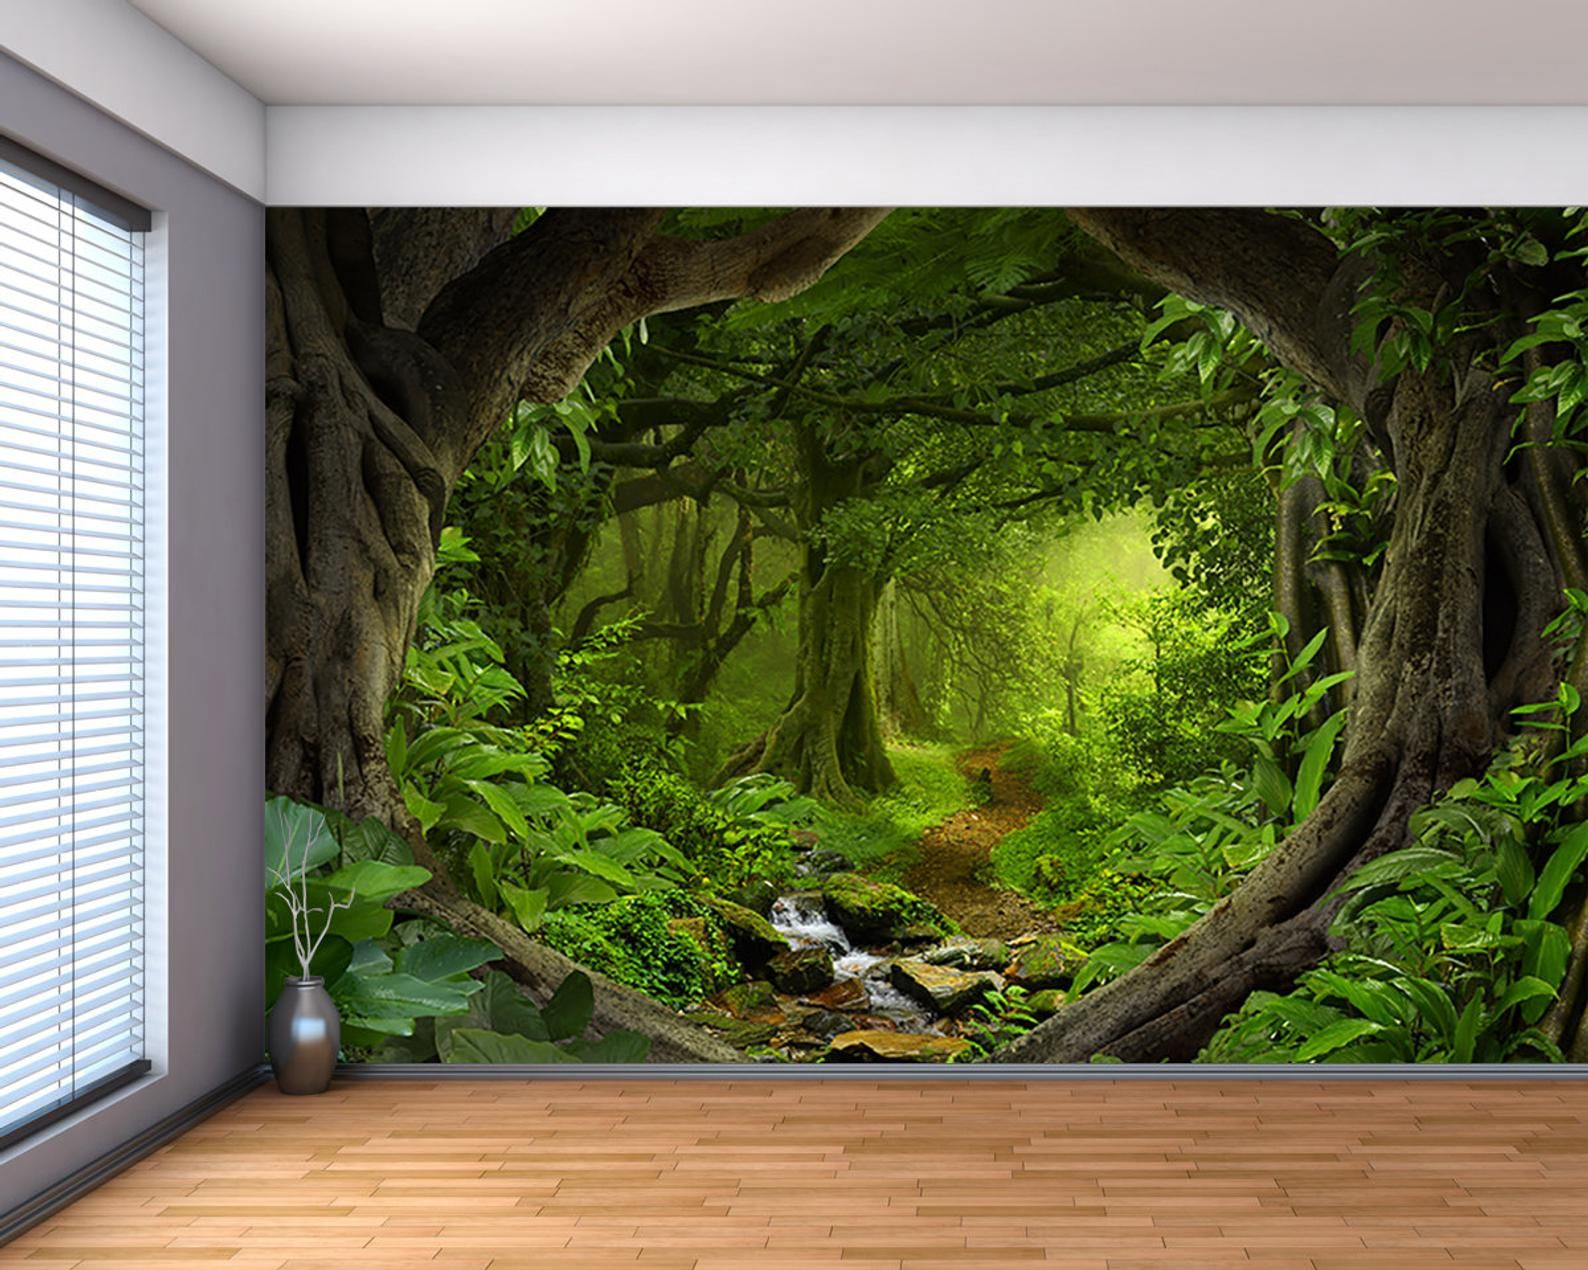 Fantasy Enchanted Magical Forest Large Wall Mural Self Adhesive Vinyl Wallpaper Peel Stick Fabric Wall Decal Large Wall Murals Forest Wall Mural Forest Backdrops